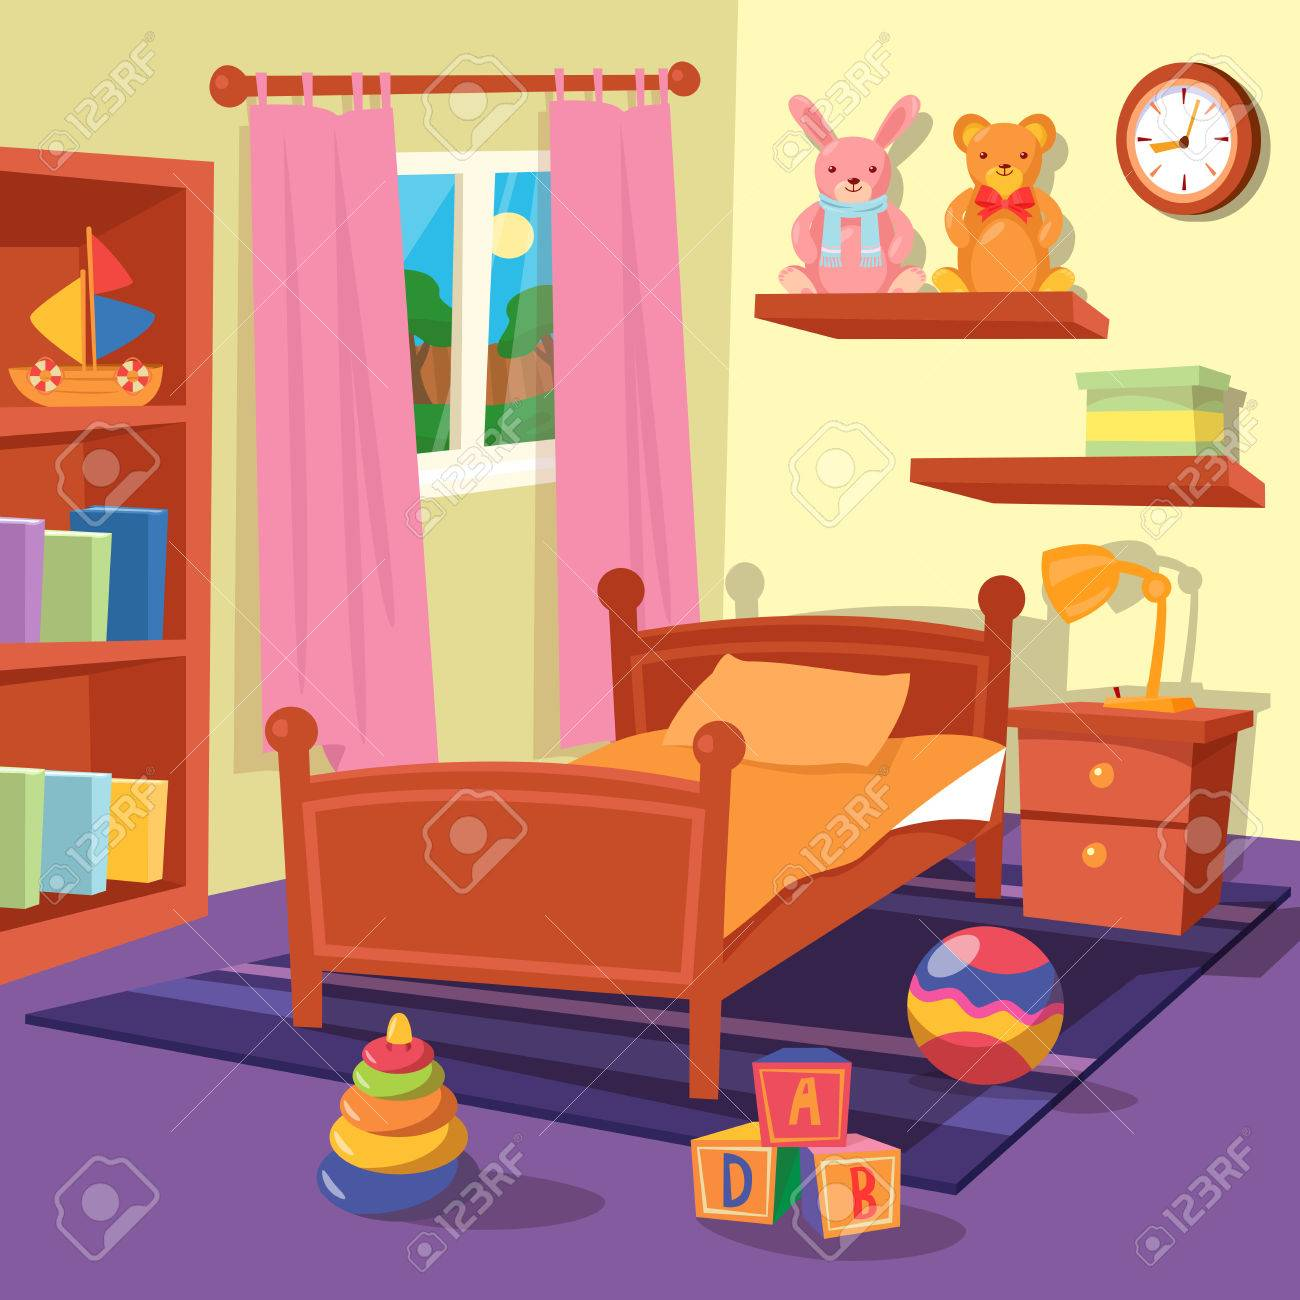 Image of: Children Bedroom Interior Children Room Vector Illustration Royalty Free Cliparts Vectors And Stock Illustration Image 57508381